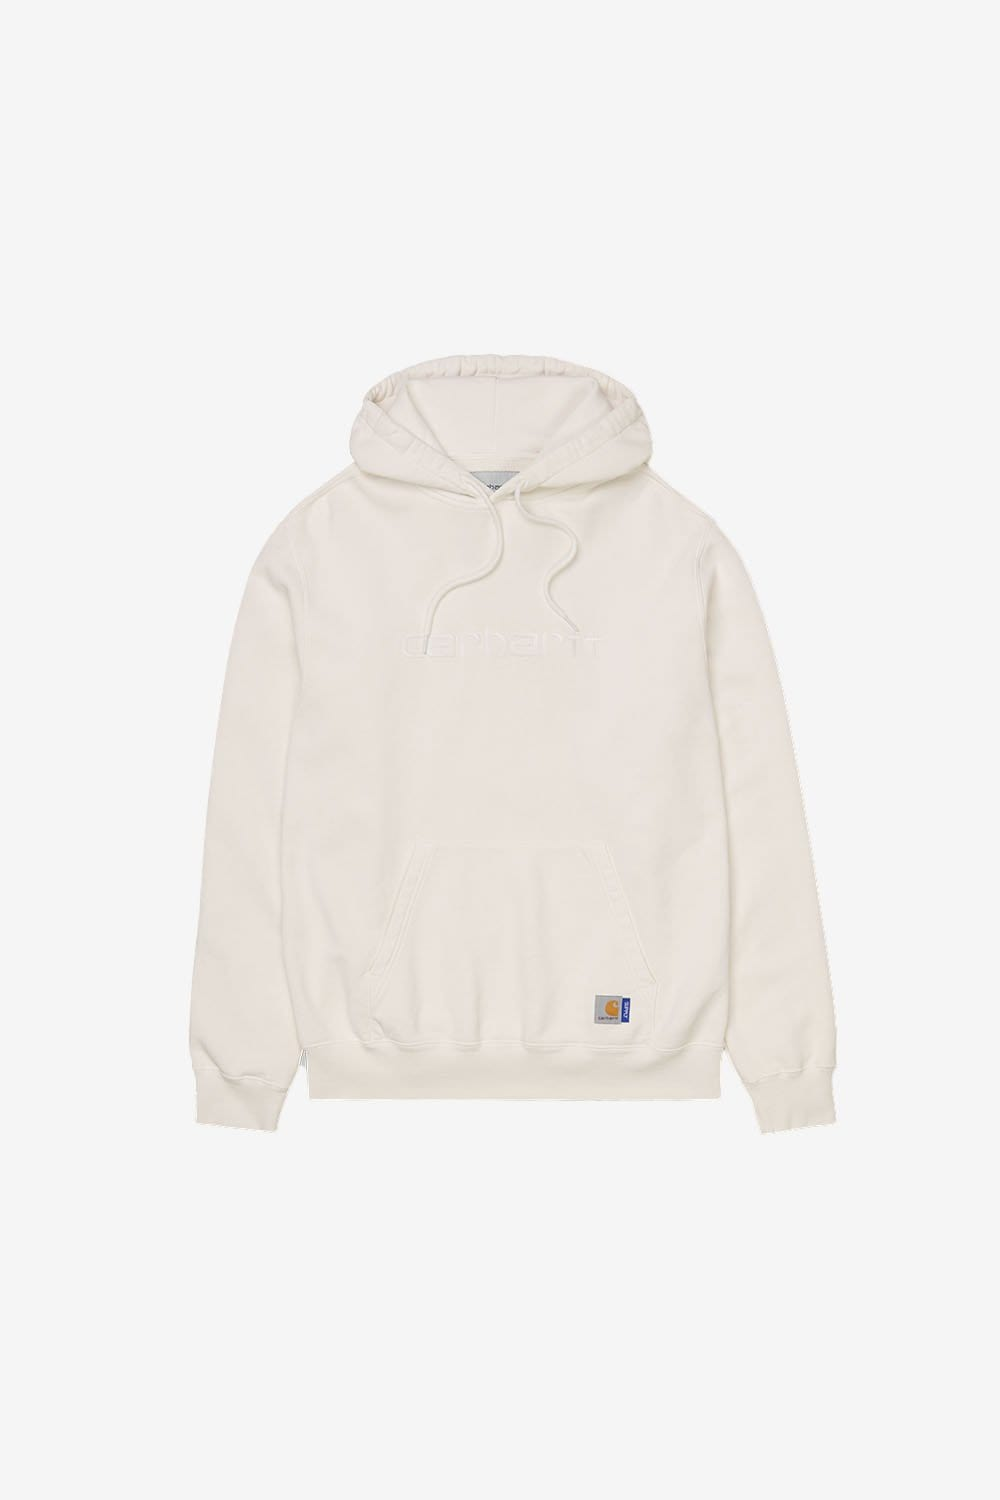 Carhartt WIP Apparel Supply Hooded Carhartt Sweat (Pigment Dyed)